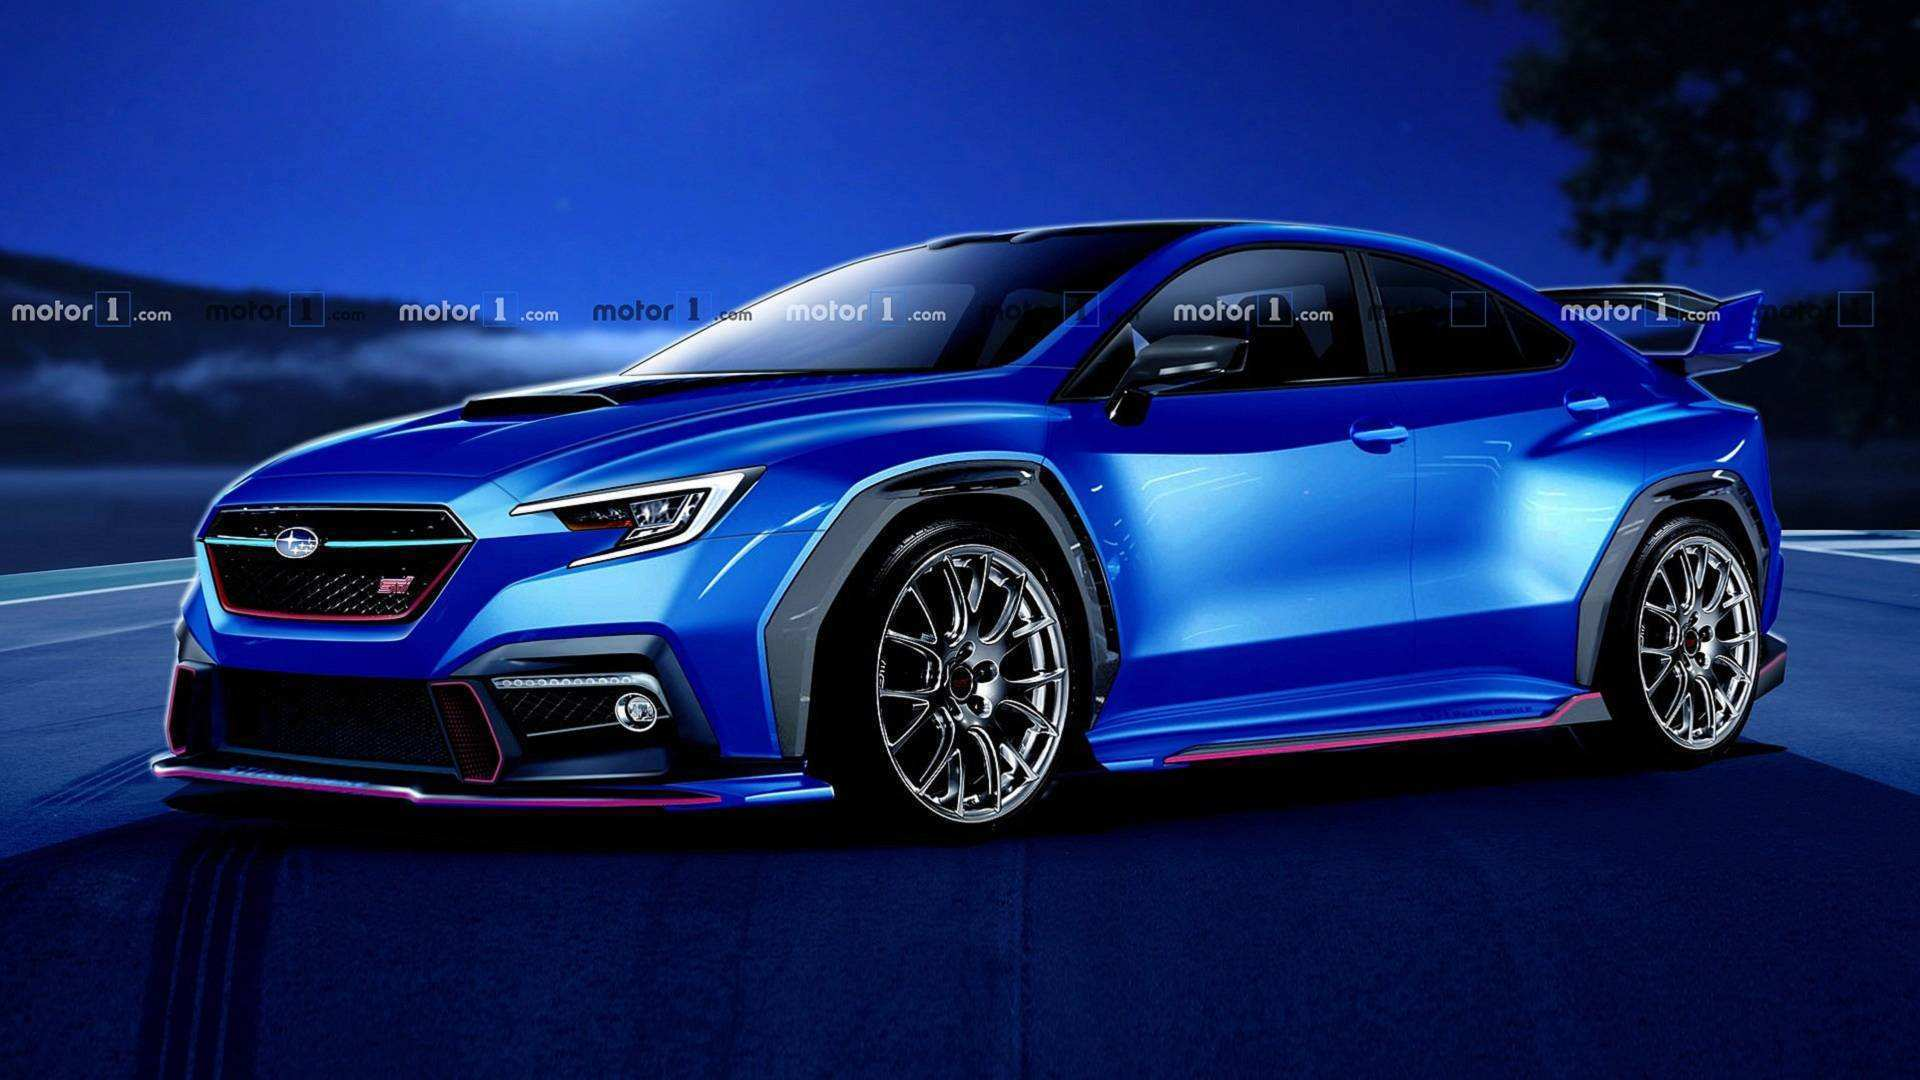 59 All New Subaru Wrx 2020 Model Configurations